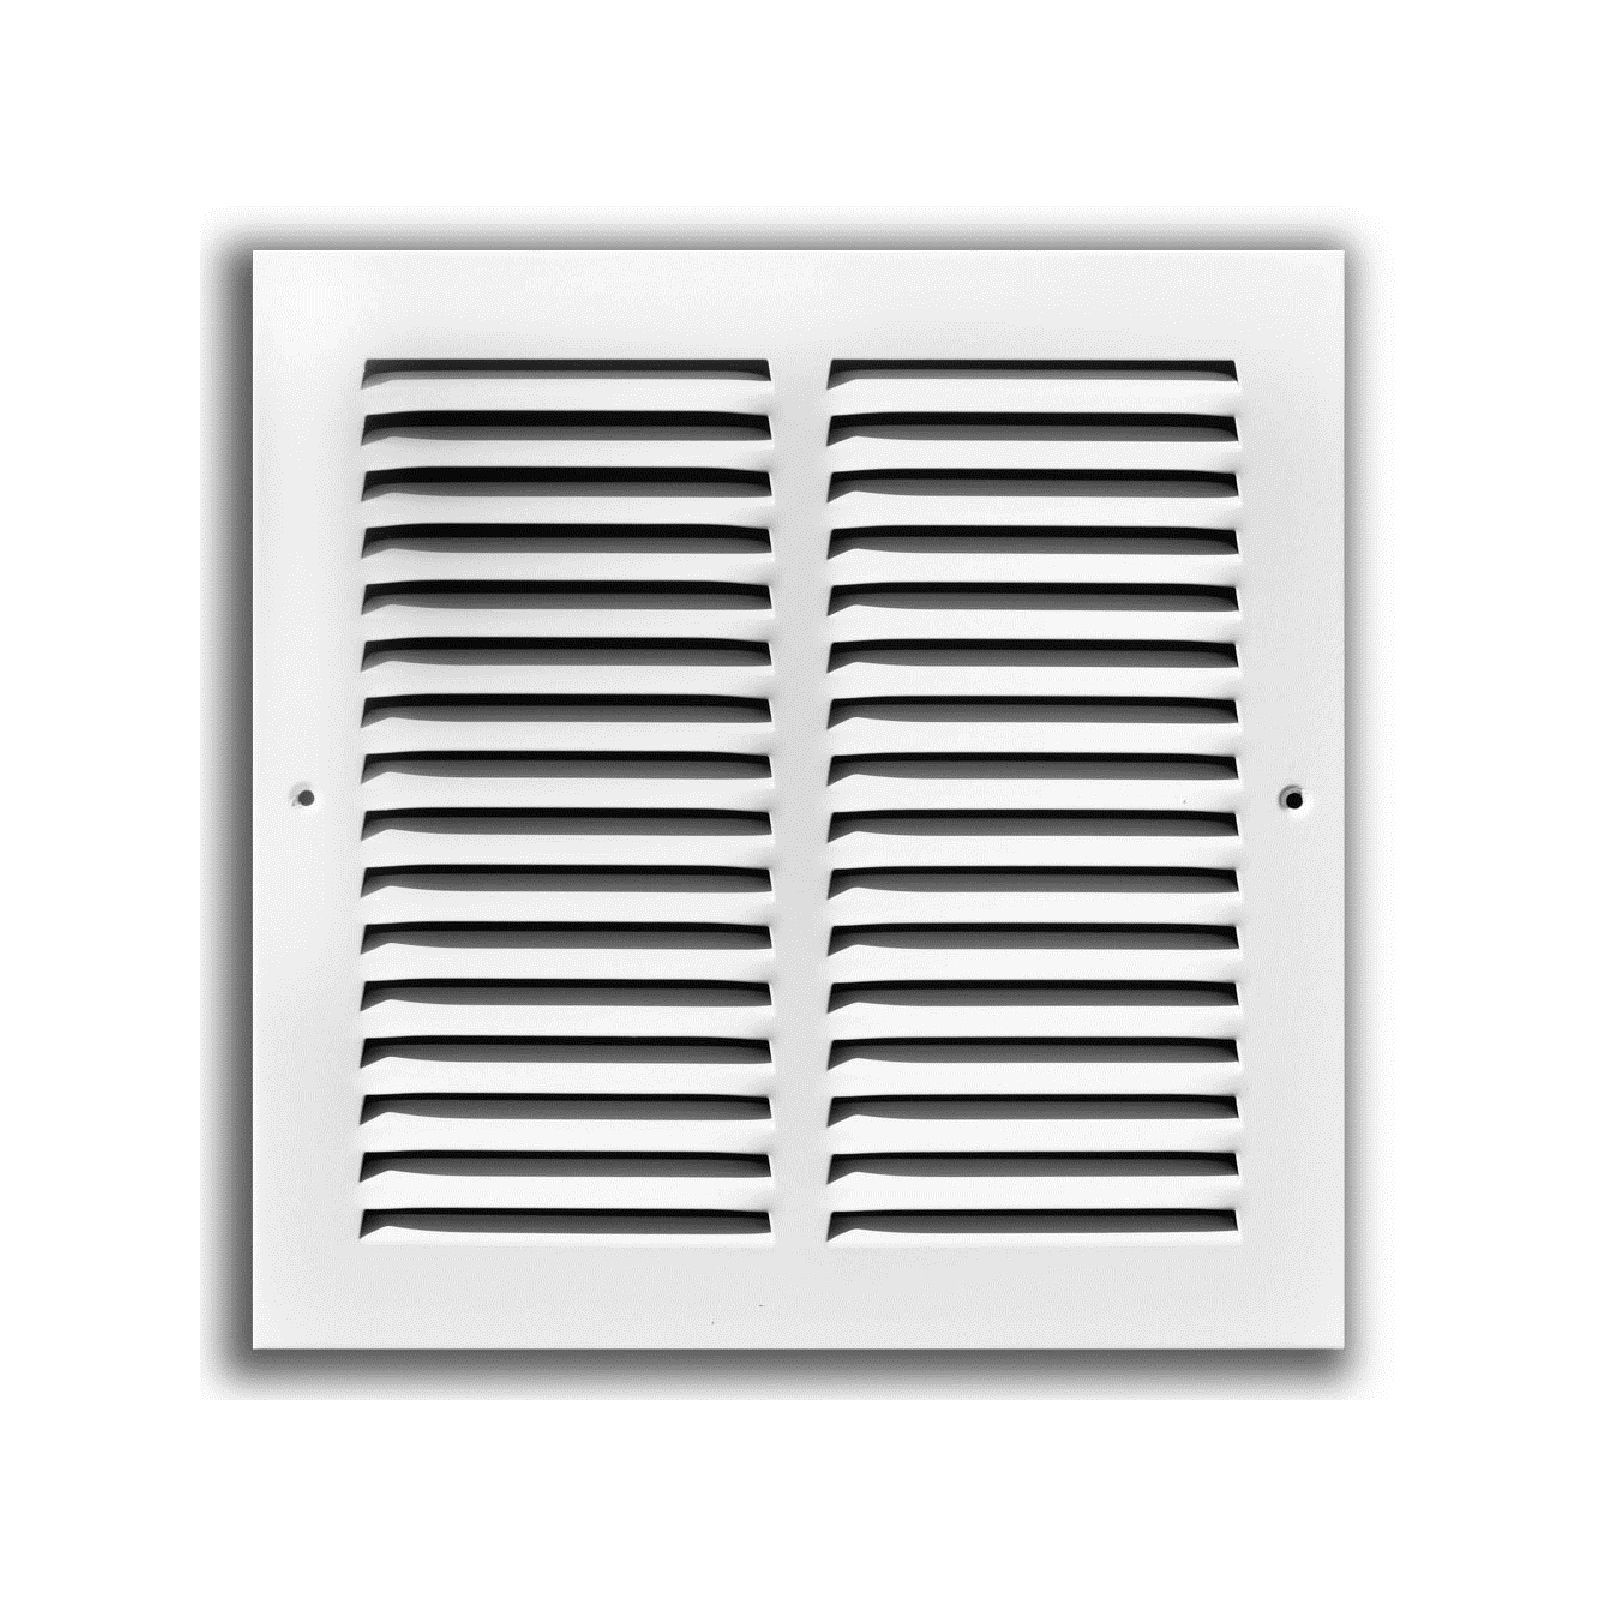 "TRUaire 170 20X30 - Steel Return Air Grille - 1/2"" Spaced Fin, White, 20"" X 30"""